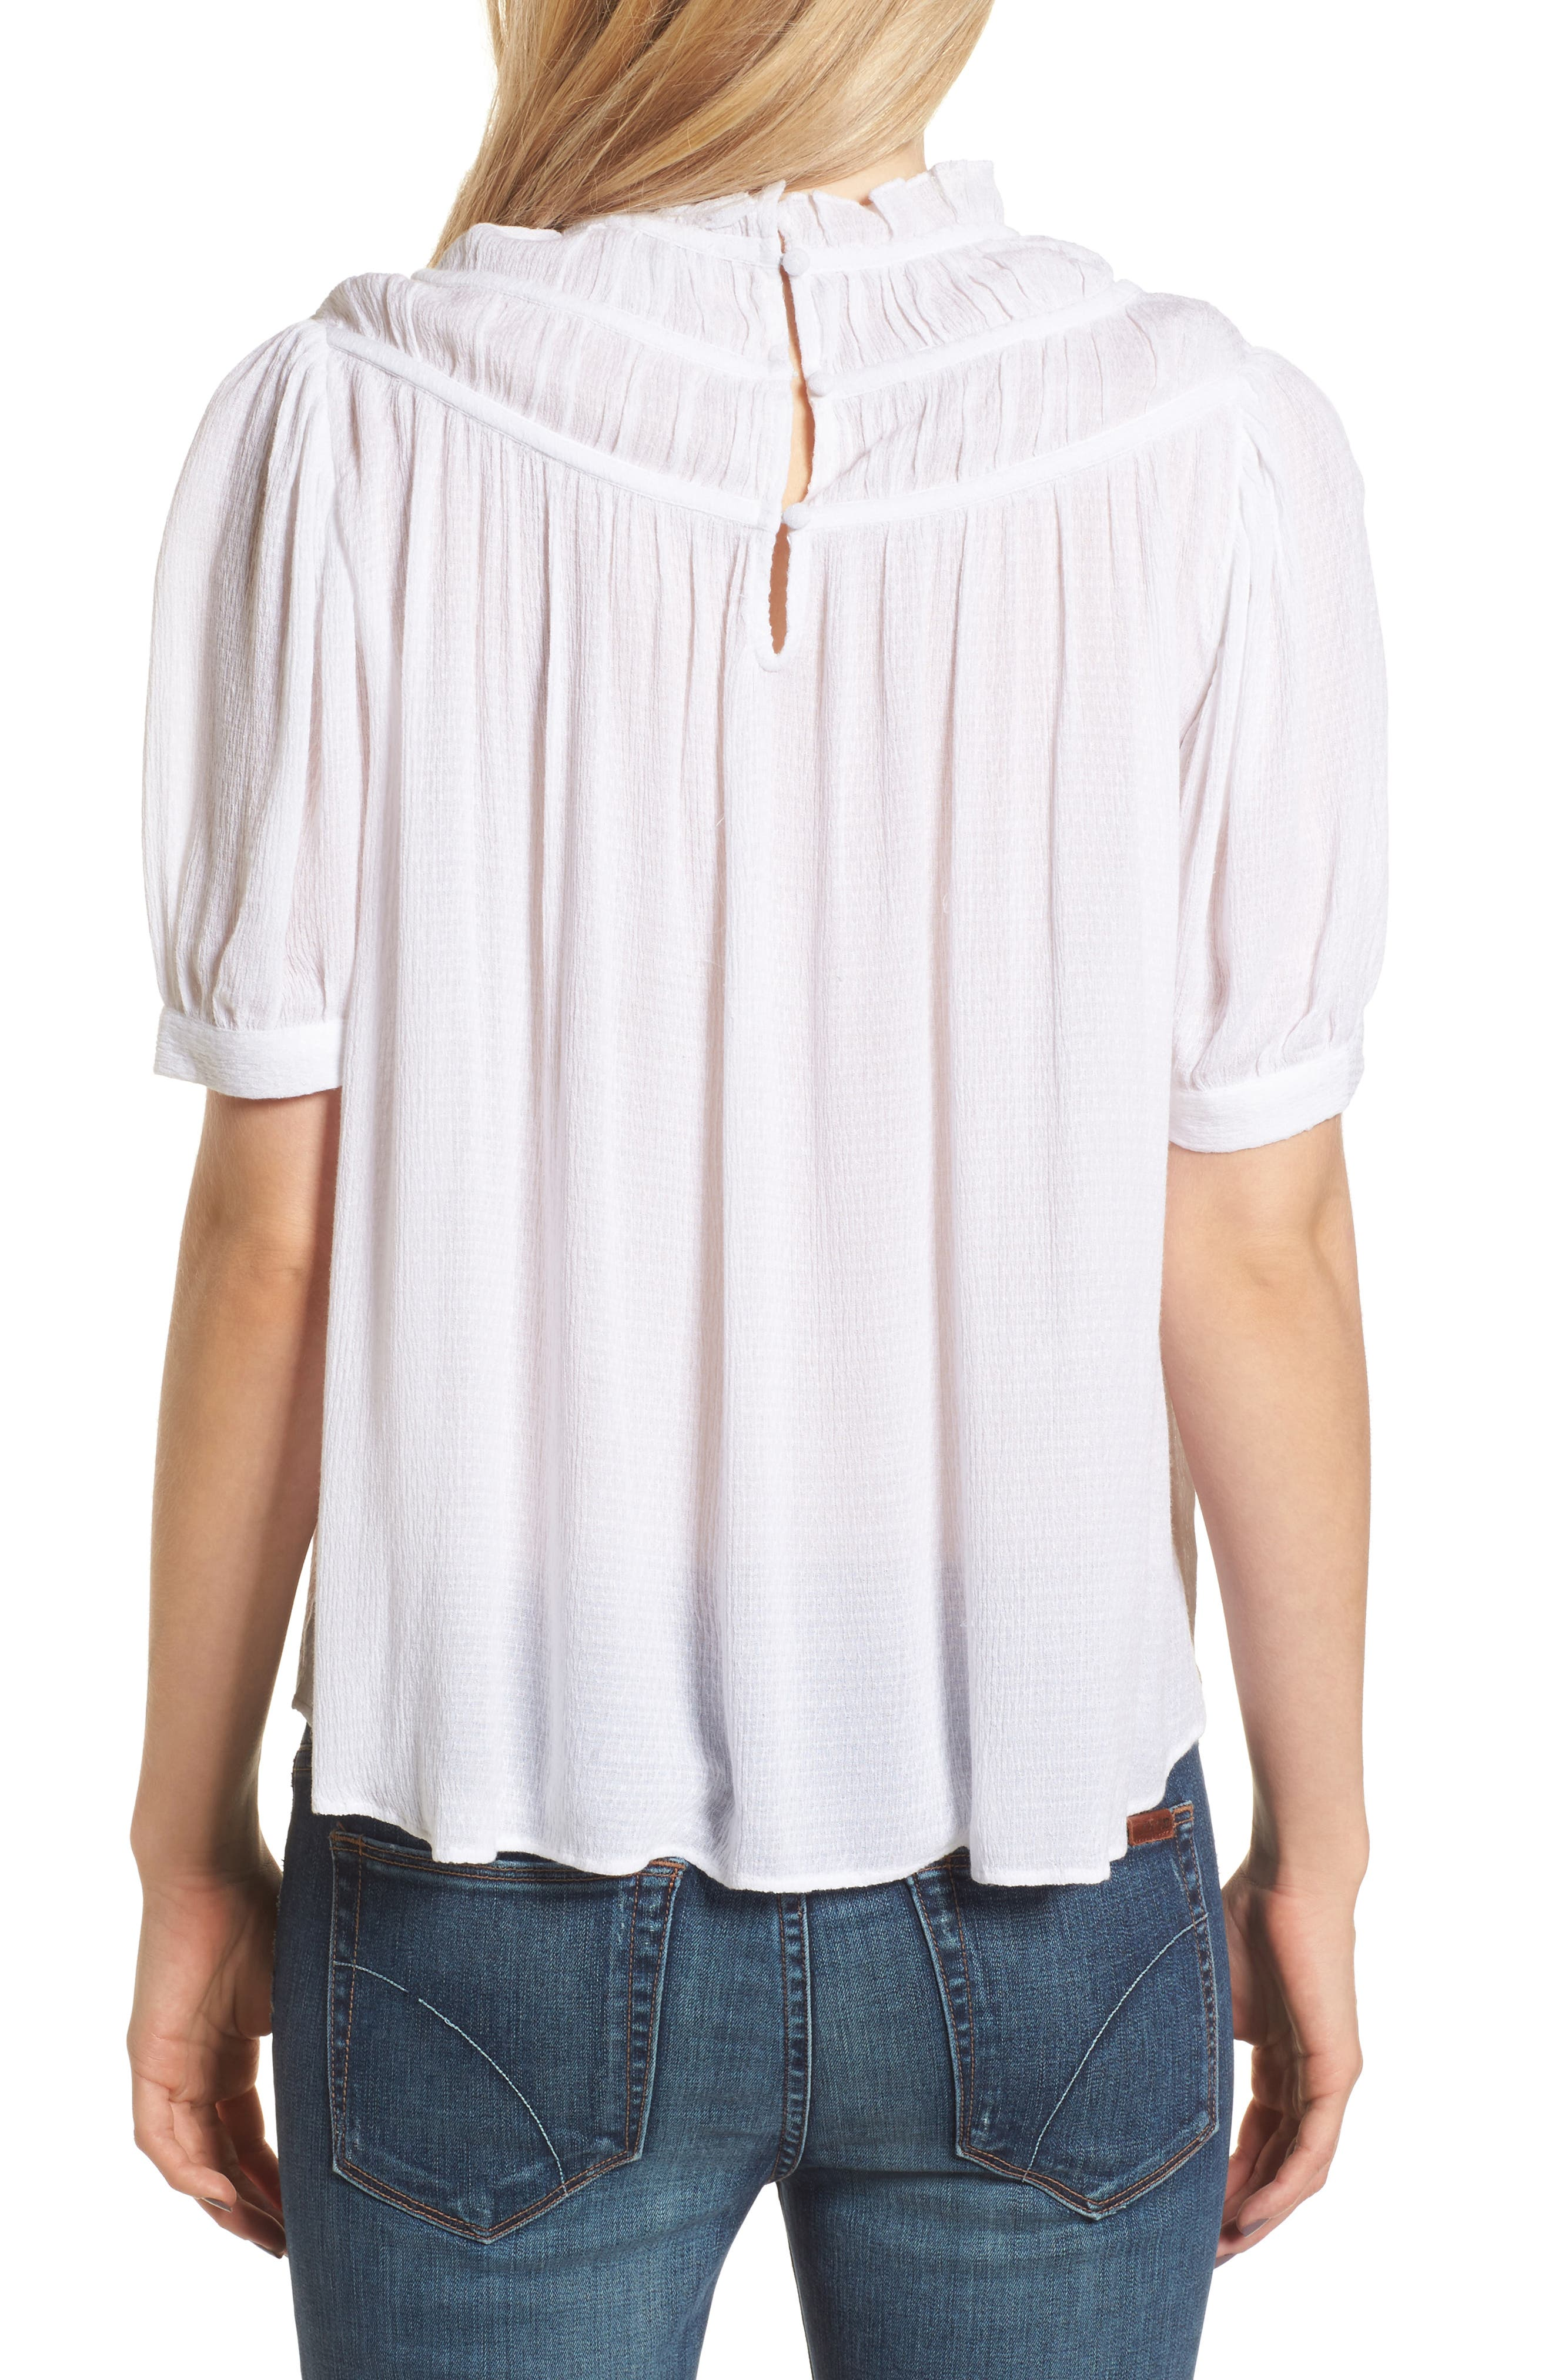 Ruched Puff Sleeve Top,                             Alternate thumbnail 2, color,                             White